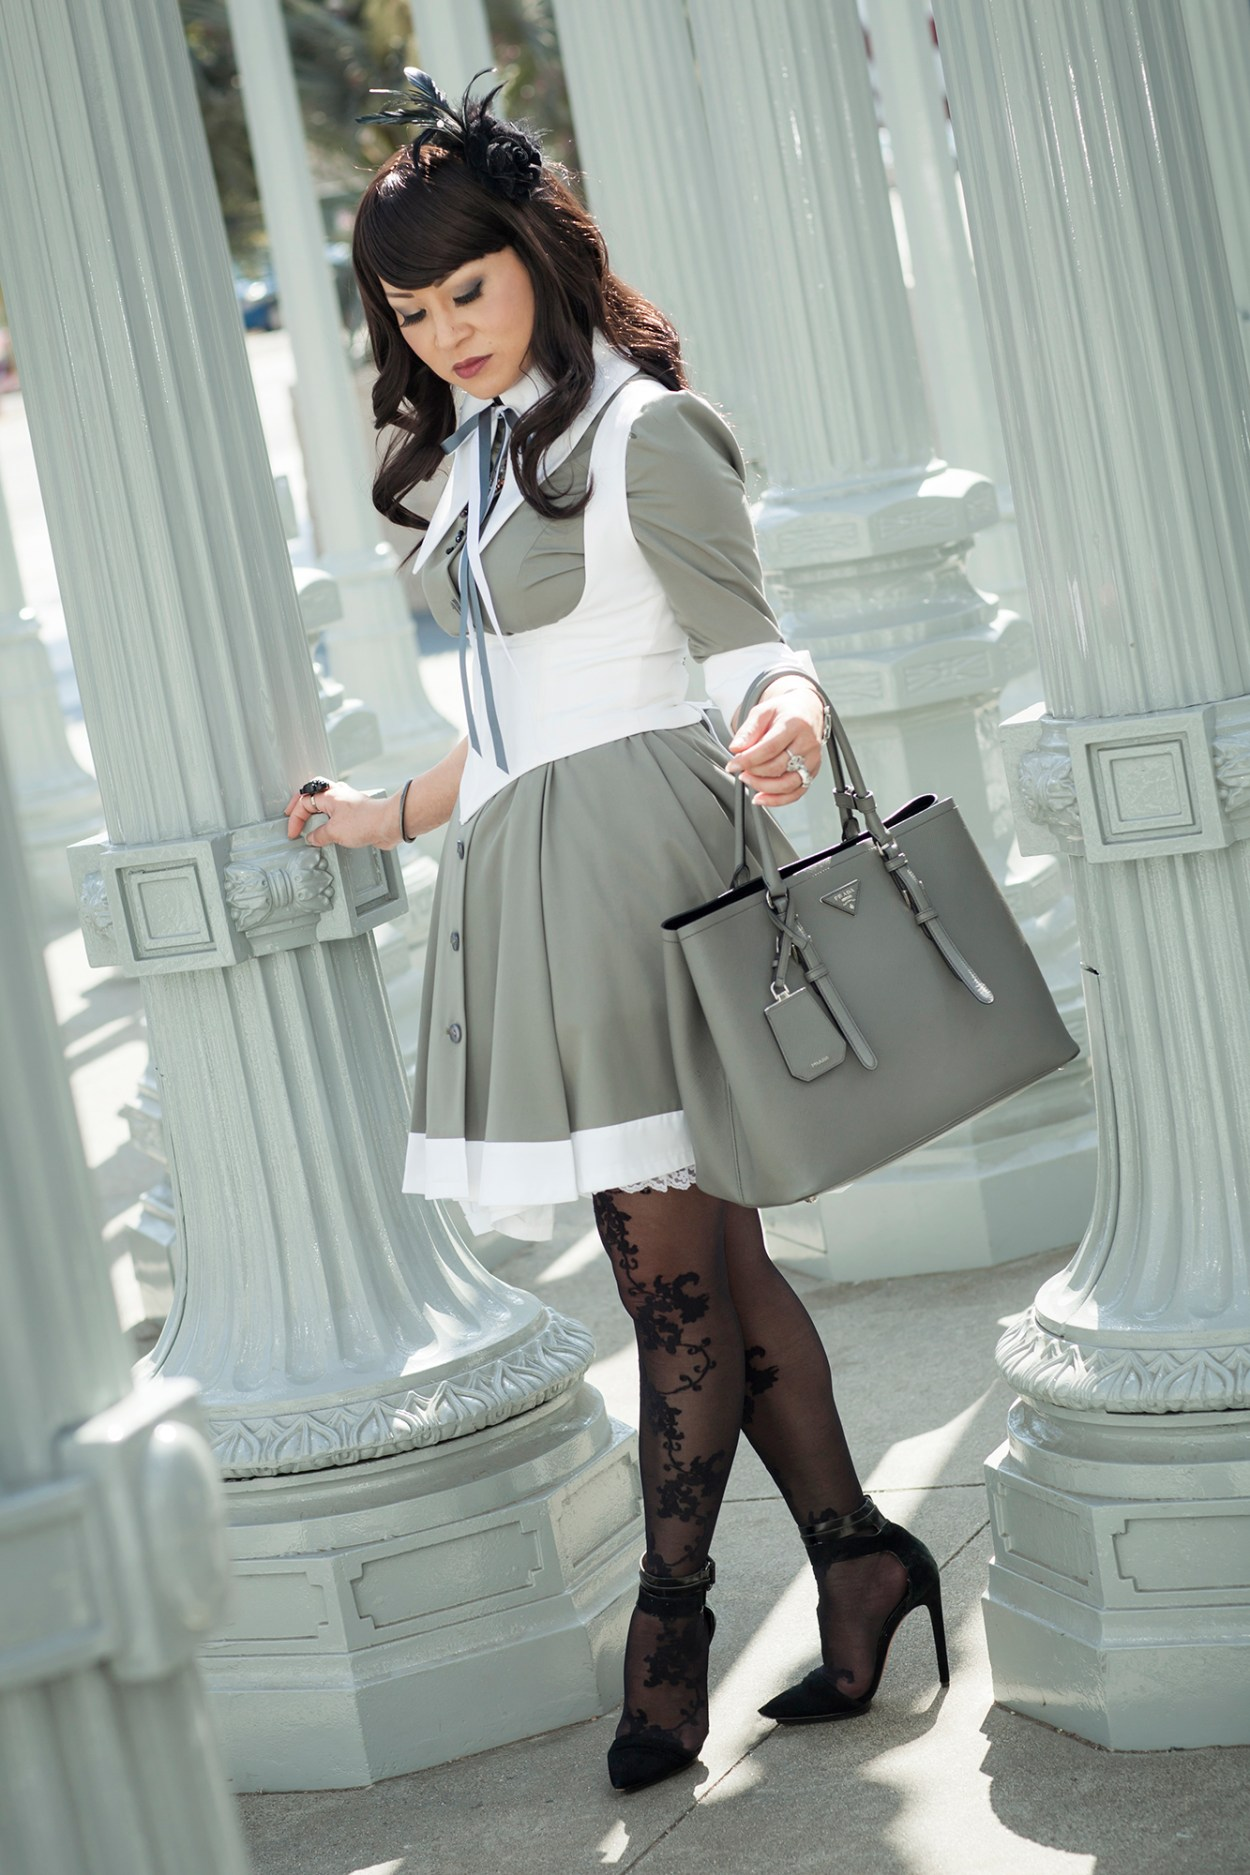 1-Atelier-BOZ-Carol-Neo-Dress-Female-Women-Fashion-Lolita-JFashion-Prada-Urban-Los-Angeles